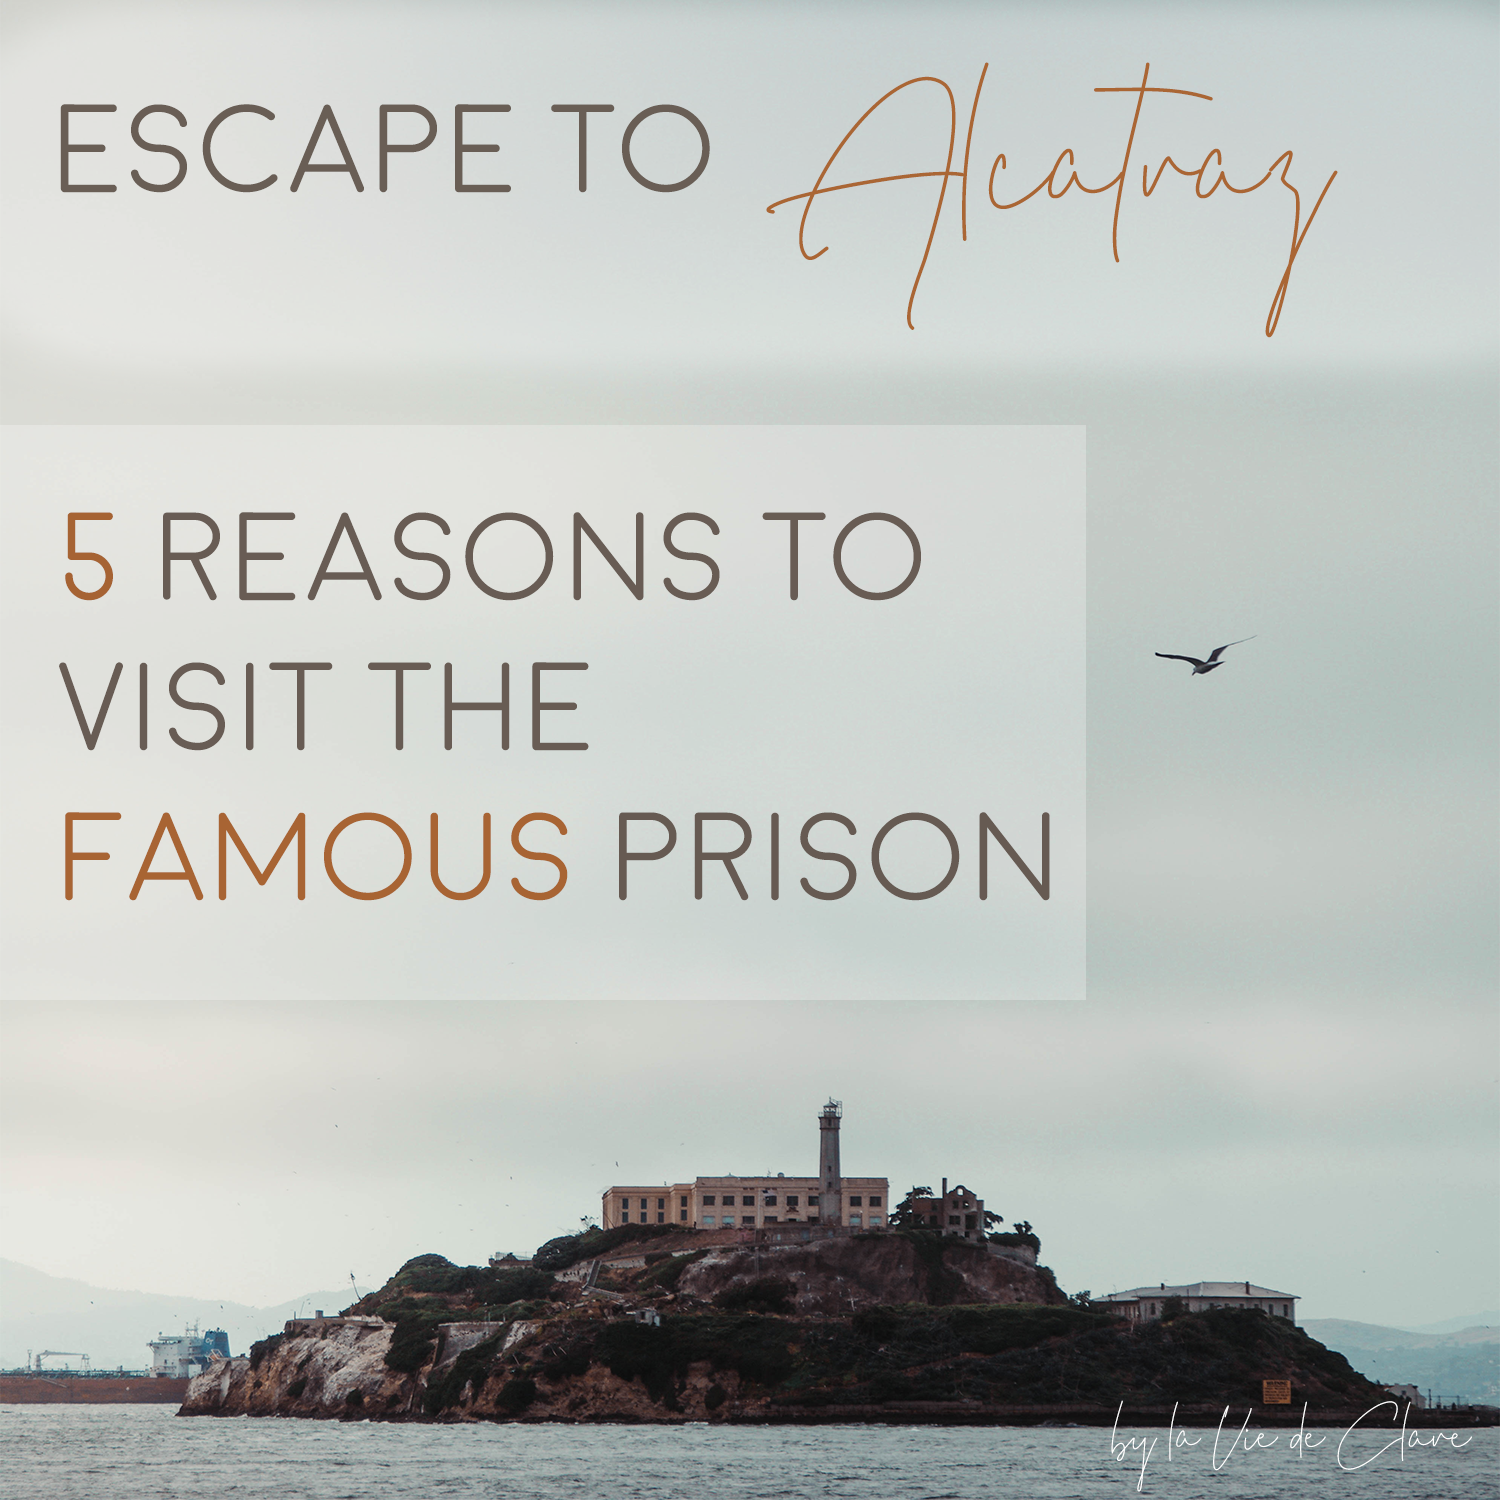 ESCAPE TO ALCATRAZ 5 REASONS TO VISIT THE FAMOUS PRISON COVER.png